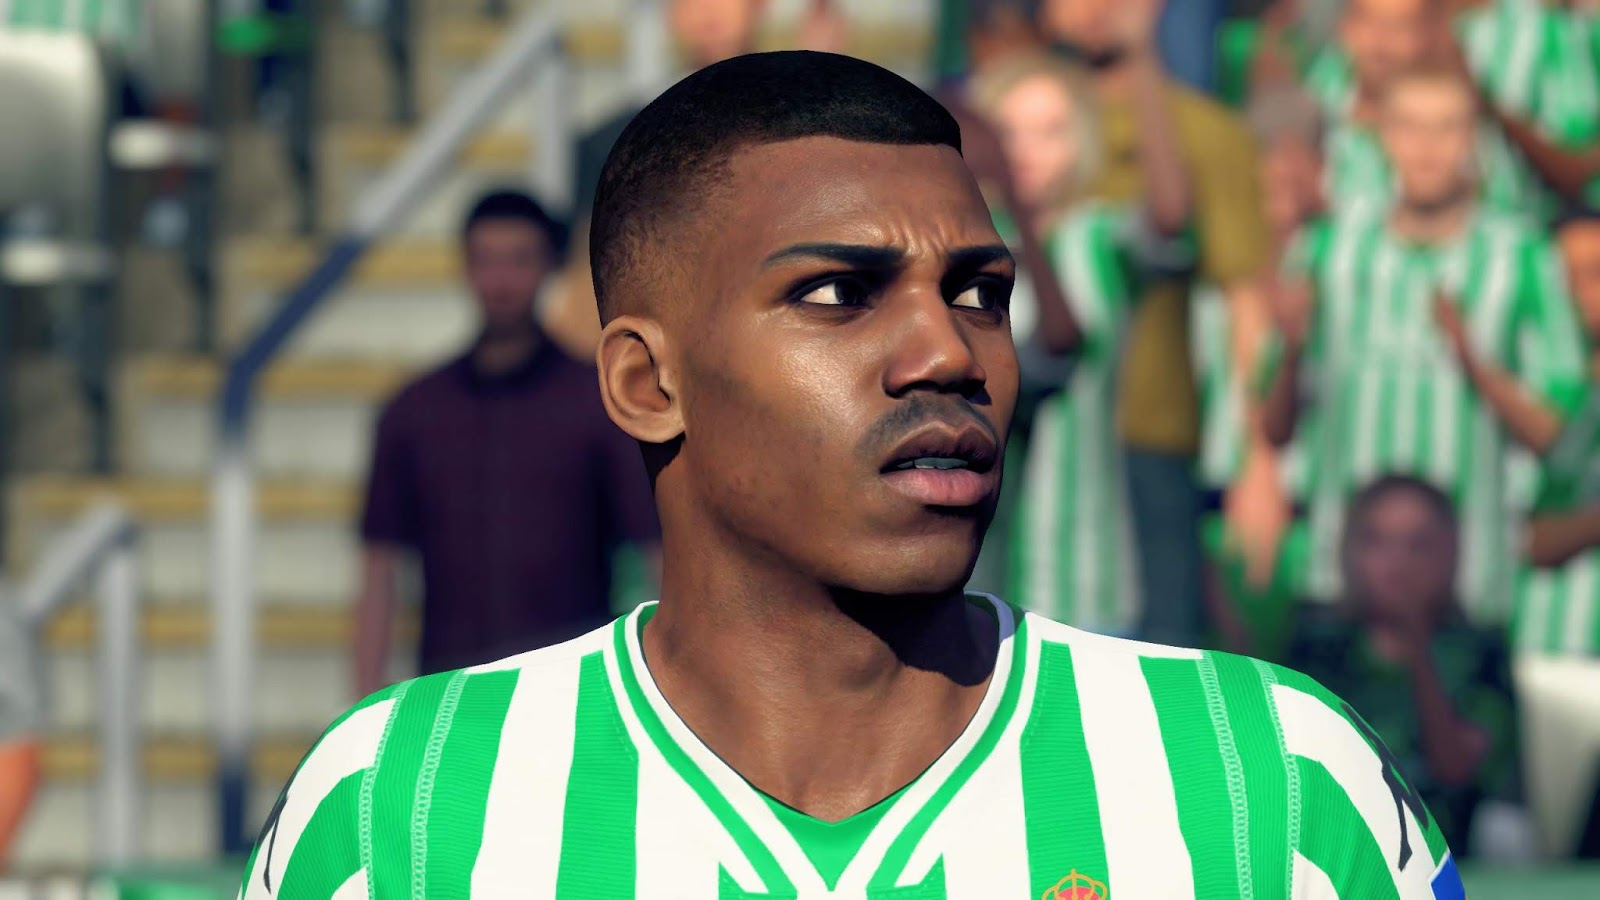 Update, FIFA 19 Faces Junior Firpo by Ofisix